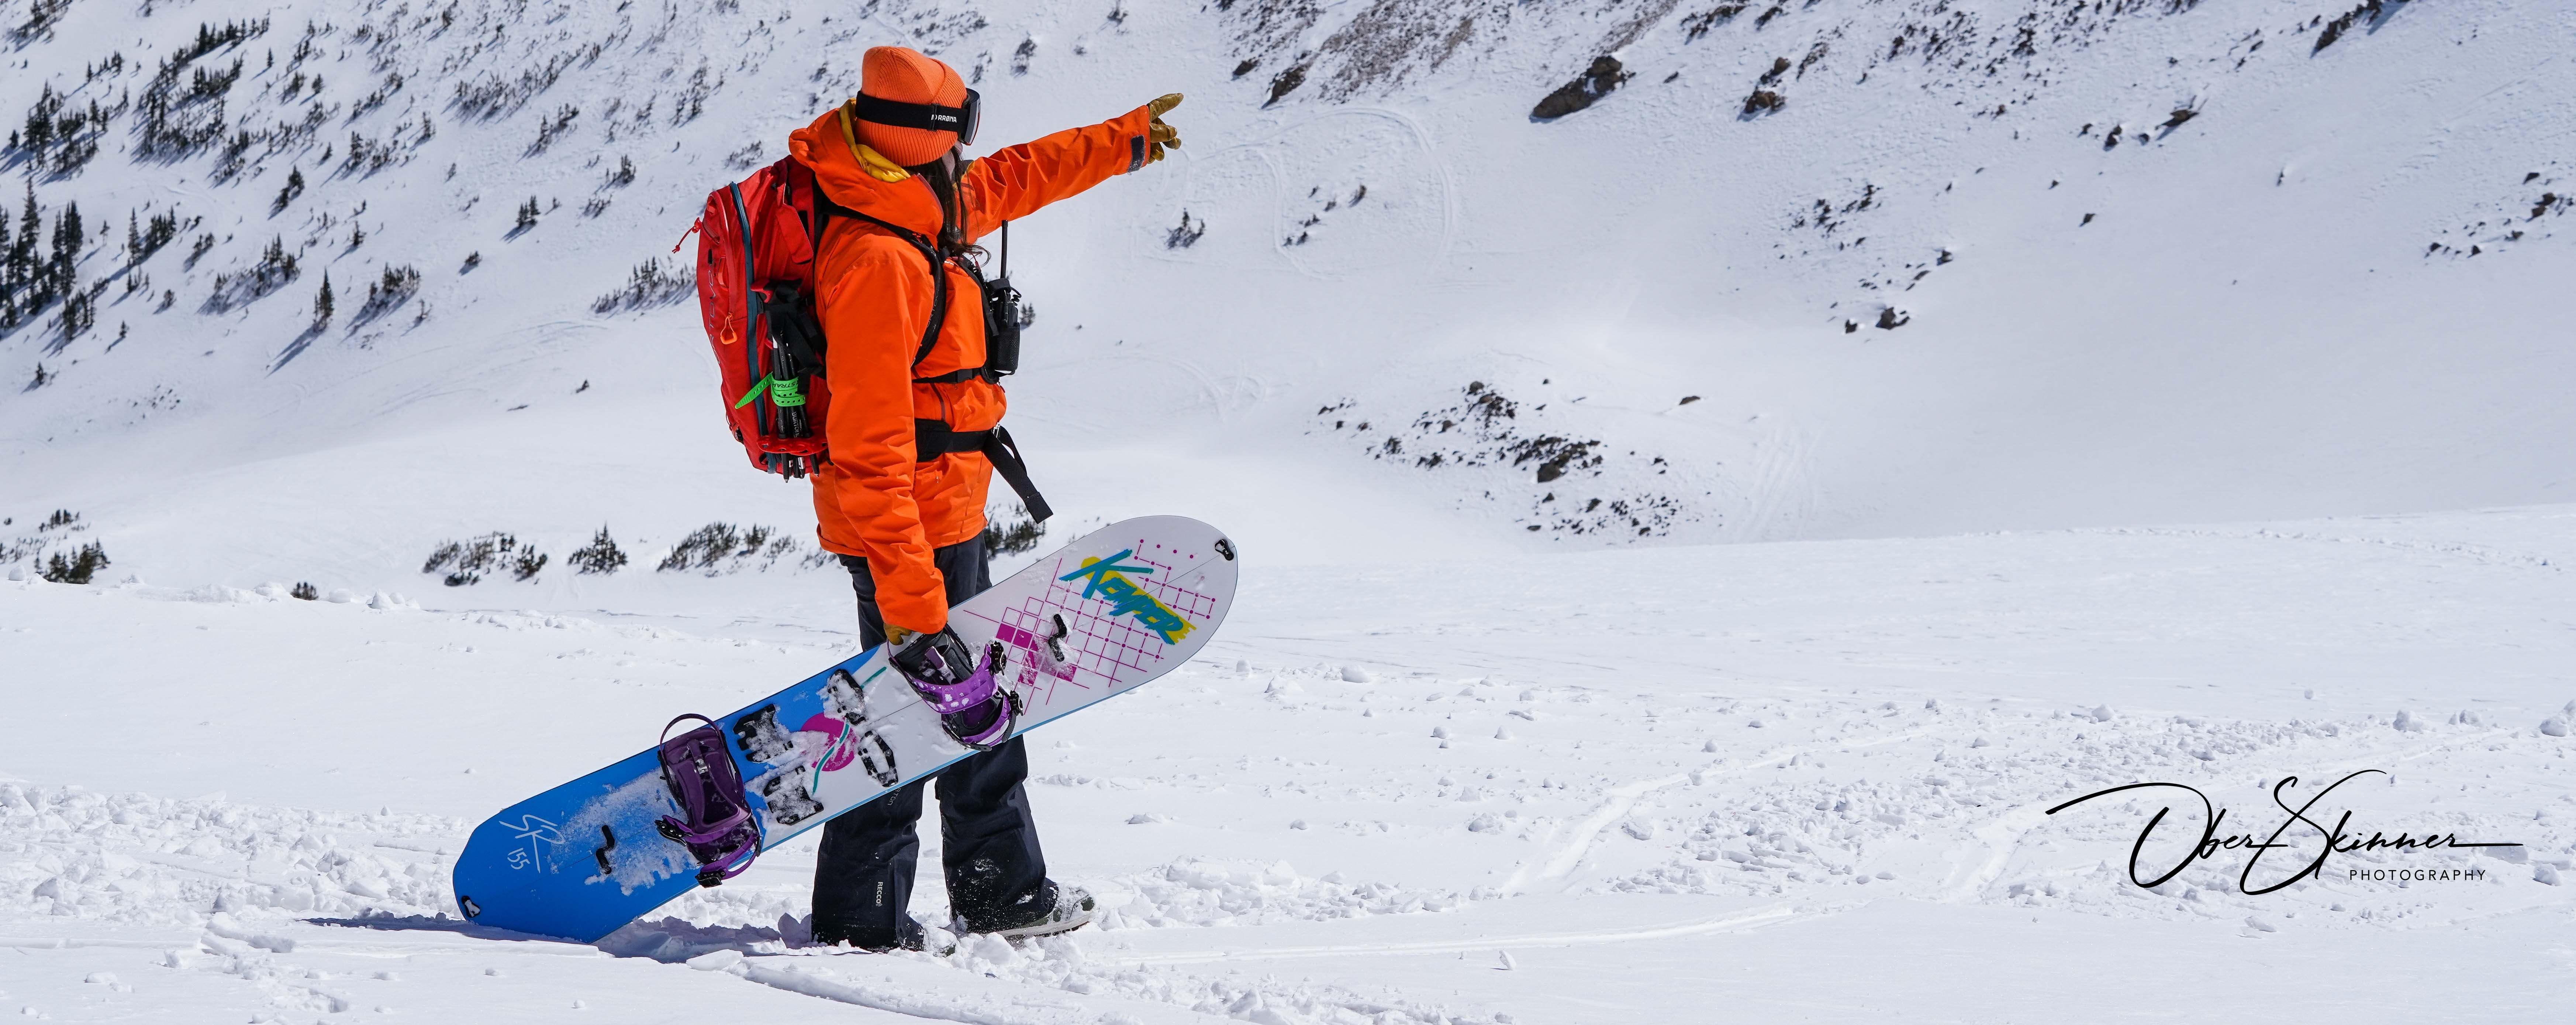 kemper-snowboard-splitboard-review-dirtbagdreams.com